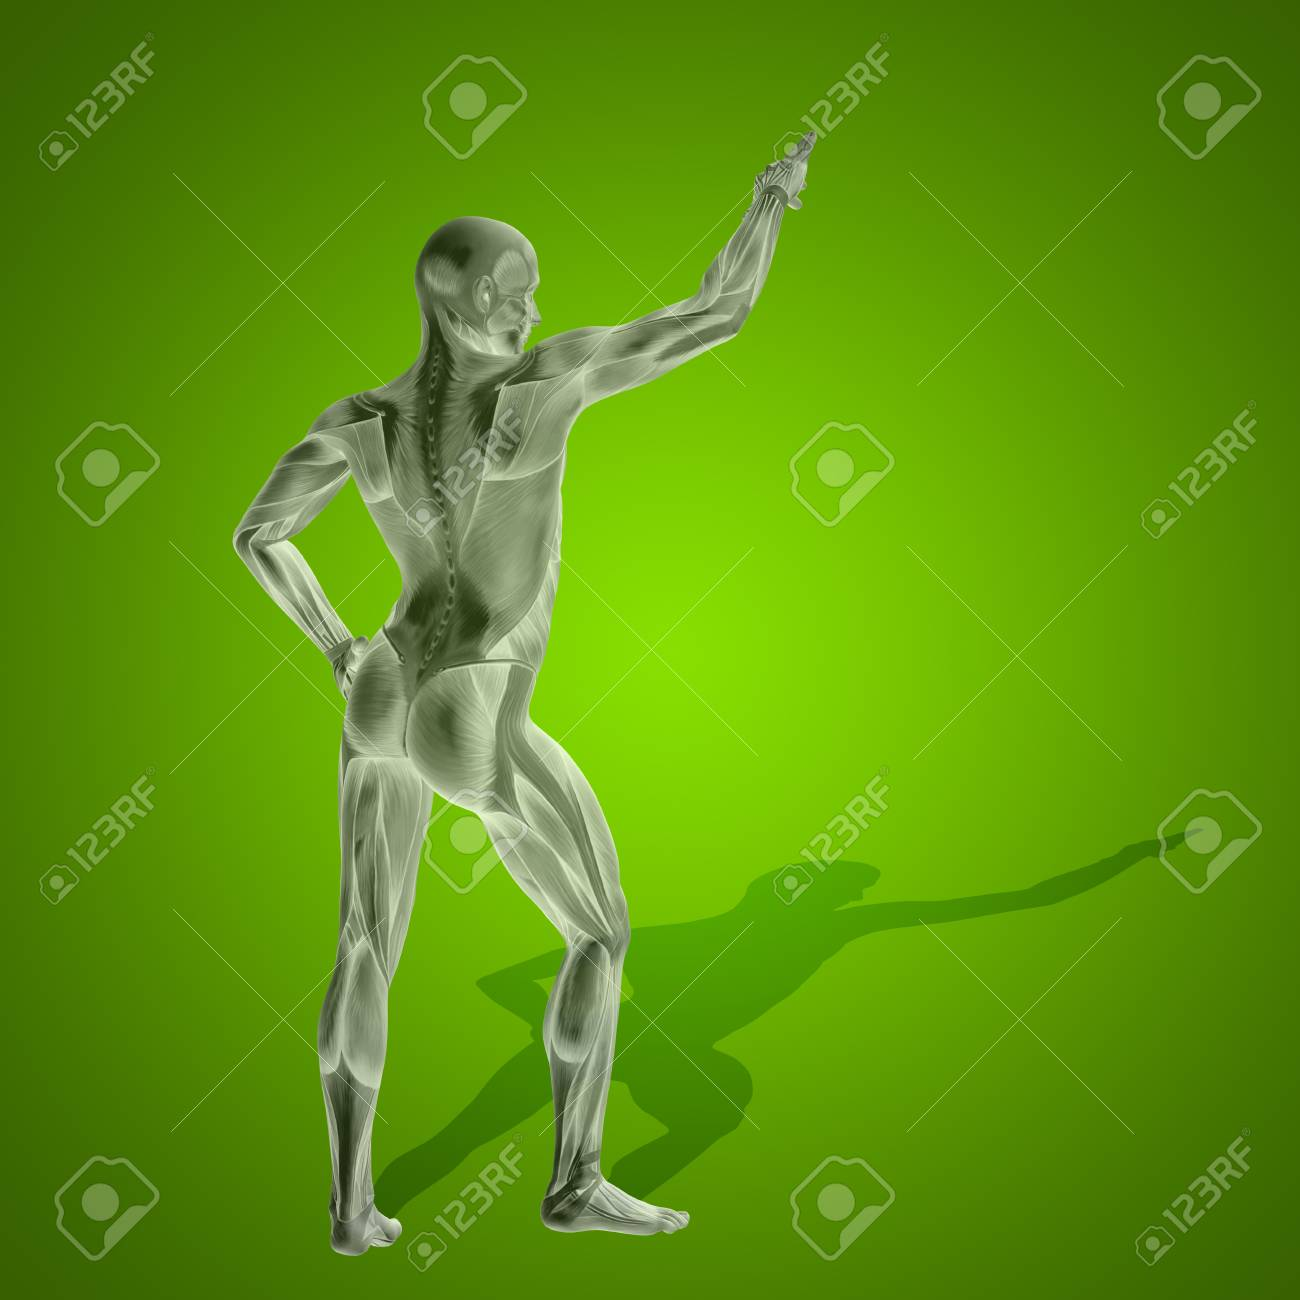 Concept Strong Human Or Man 3D Anatomy Body With Muscle For Health ...